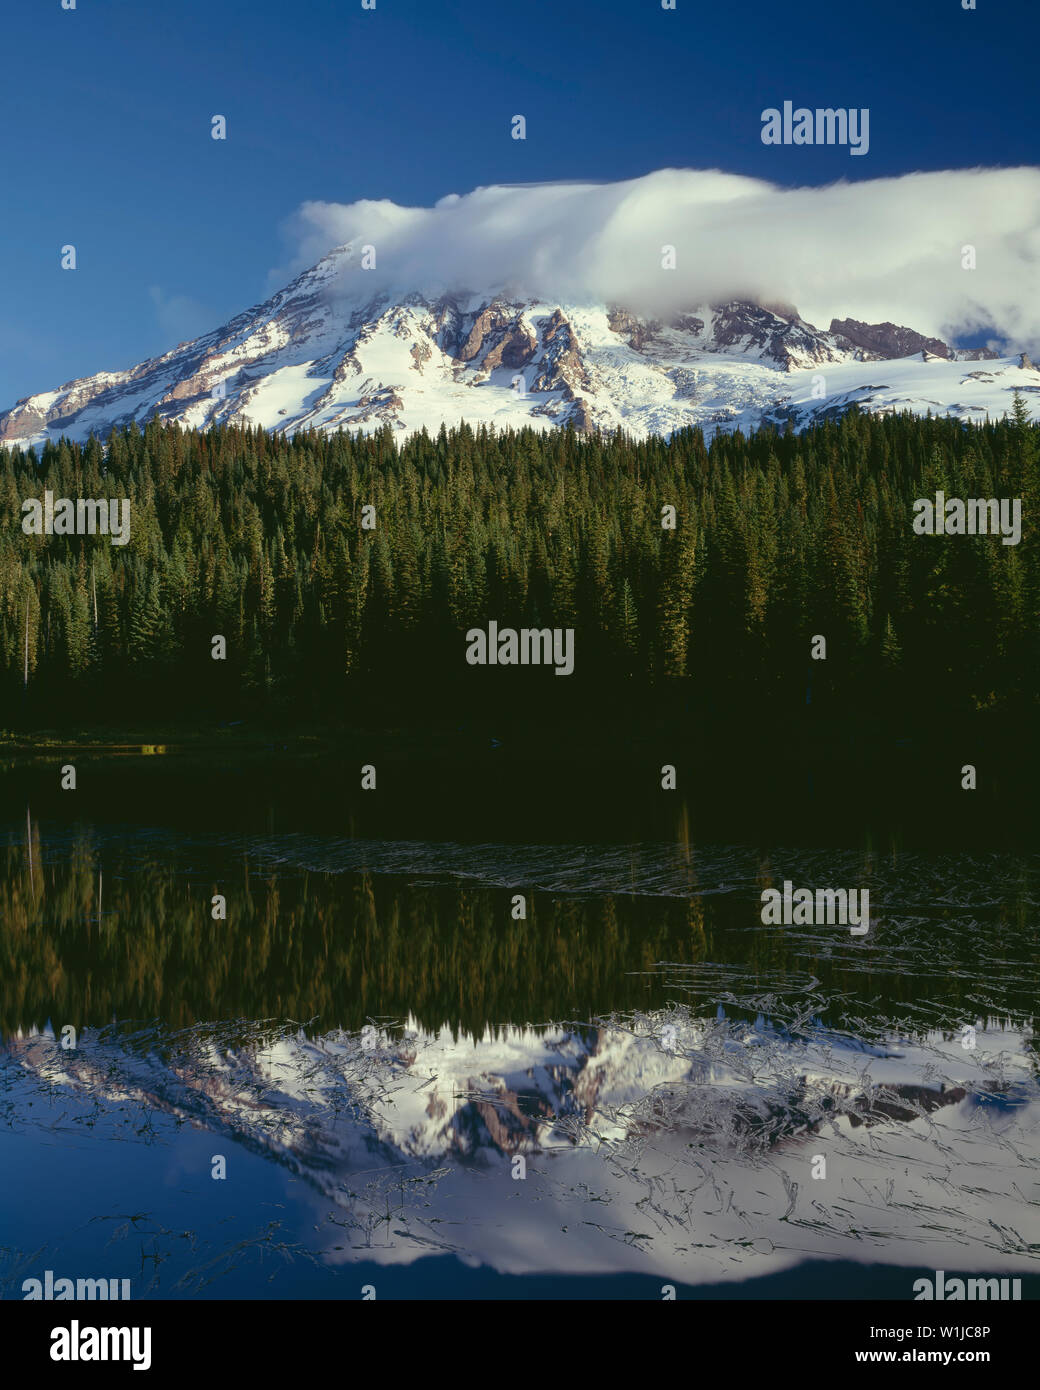 USA, Washington, Mt. Rainier National Park, Morning clouds shroud summit of Mt. Rainier which is mirrored in Reflection Lake. - Stock Image